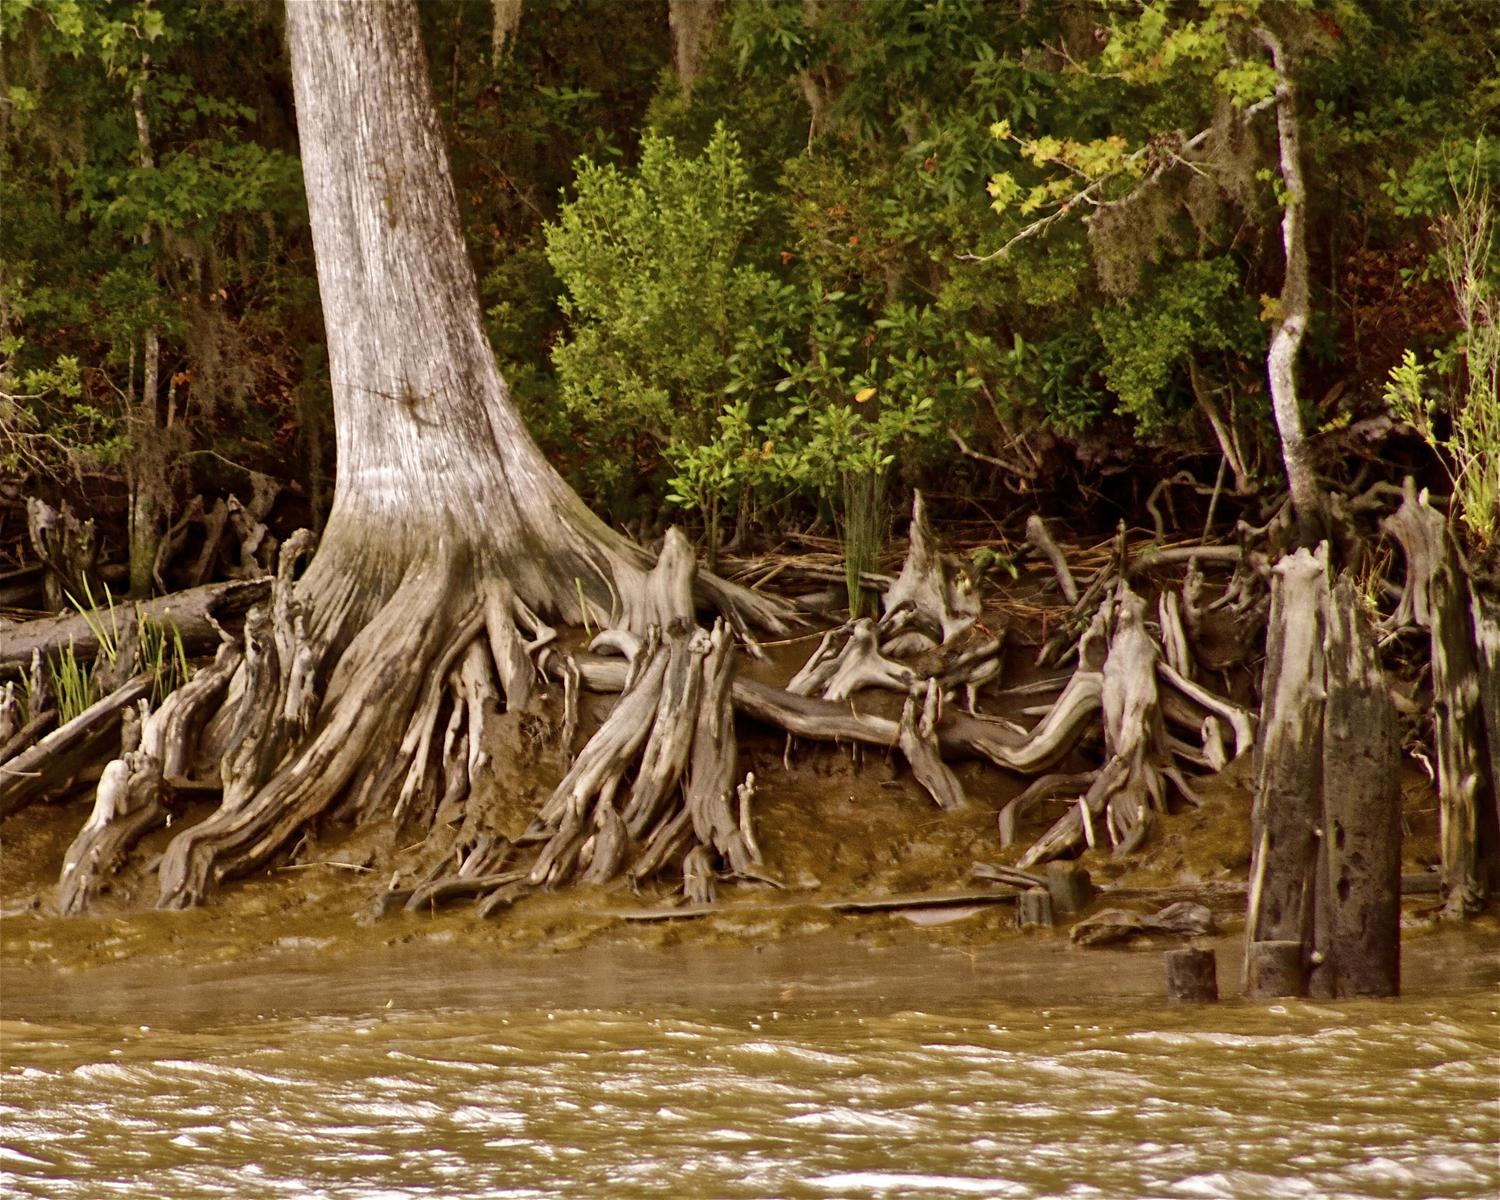 By Deborah Baird - Landscapes 2 - Satilla Cypress